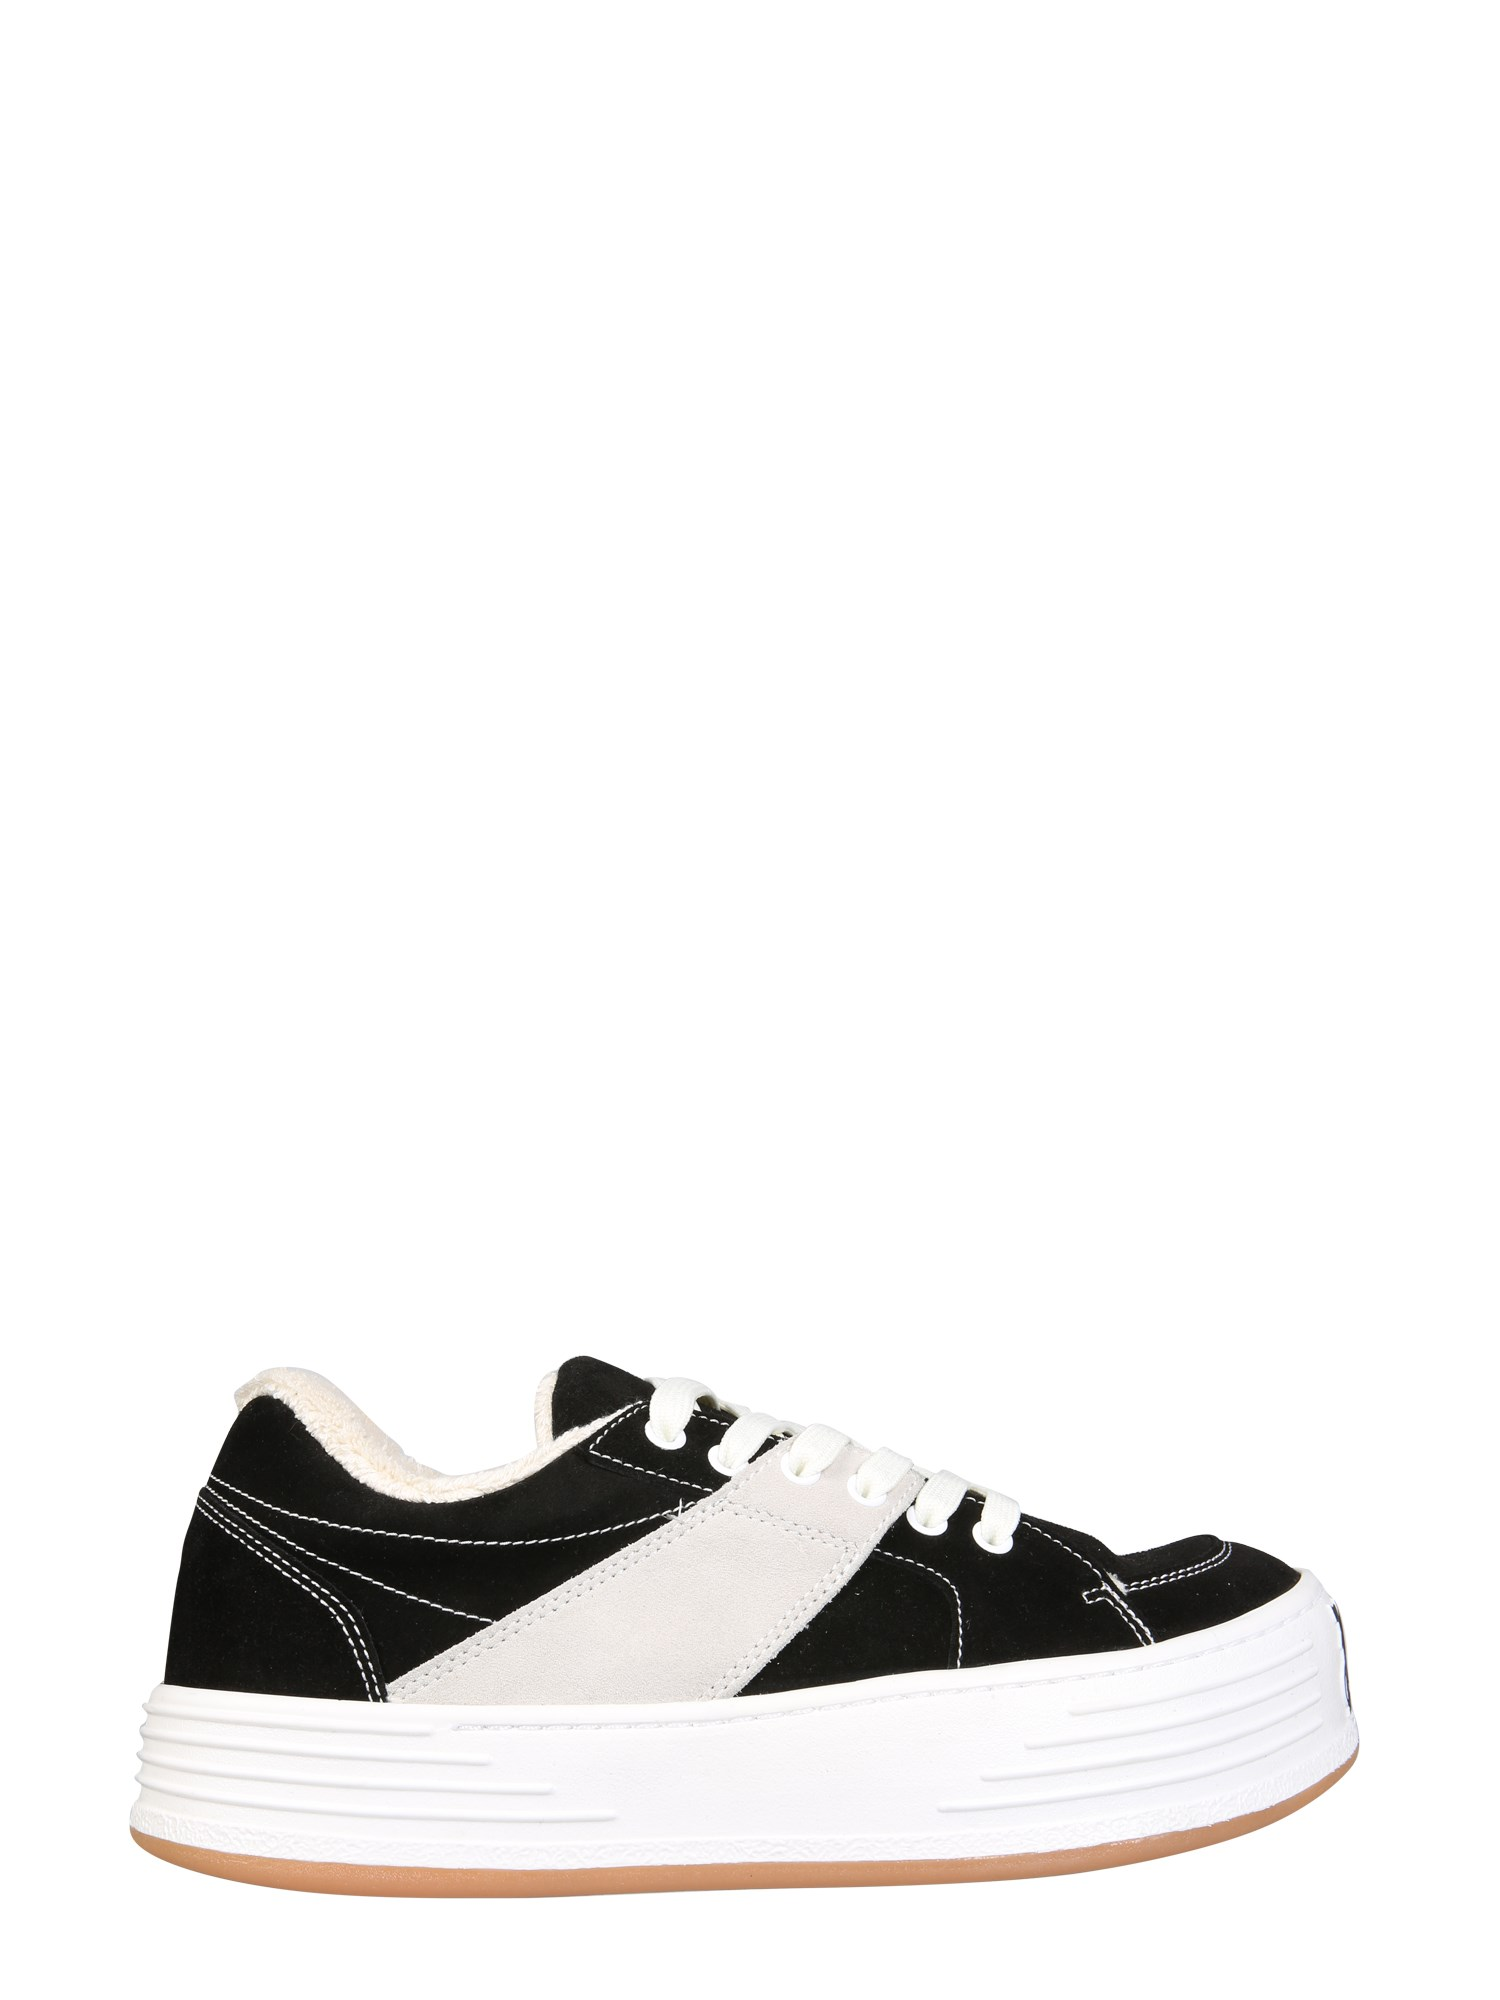 "Palm Angels SNEAKER LOW TOP ""SNOW"""